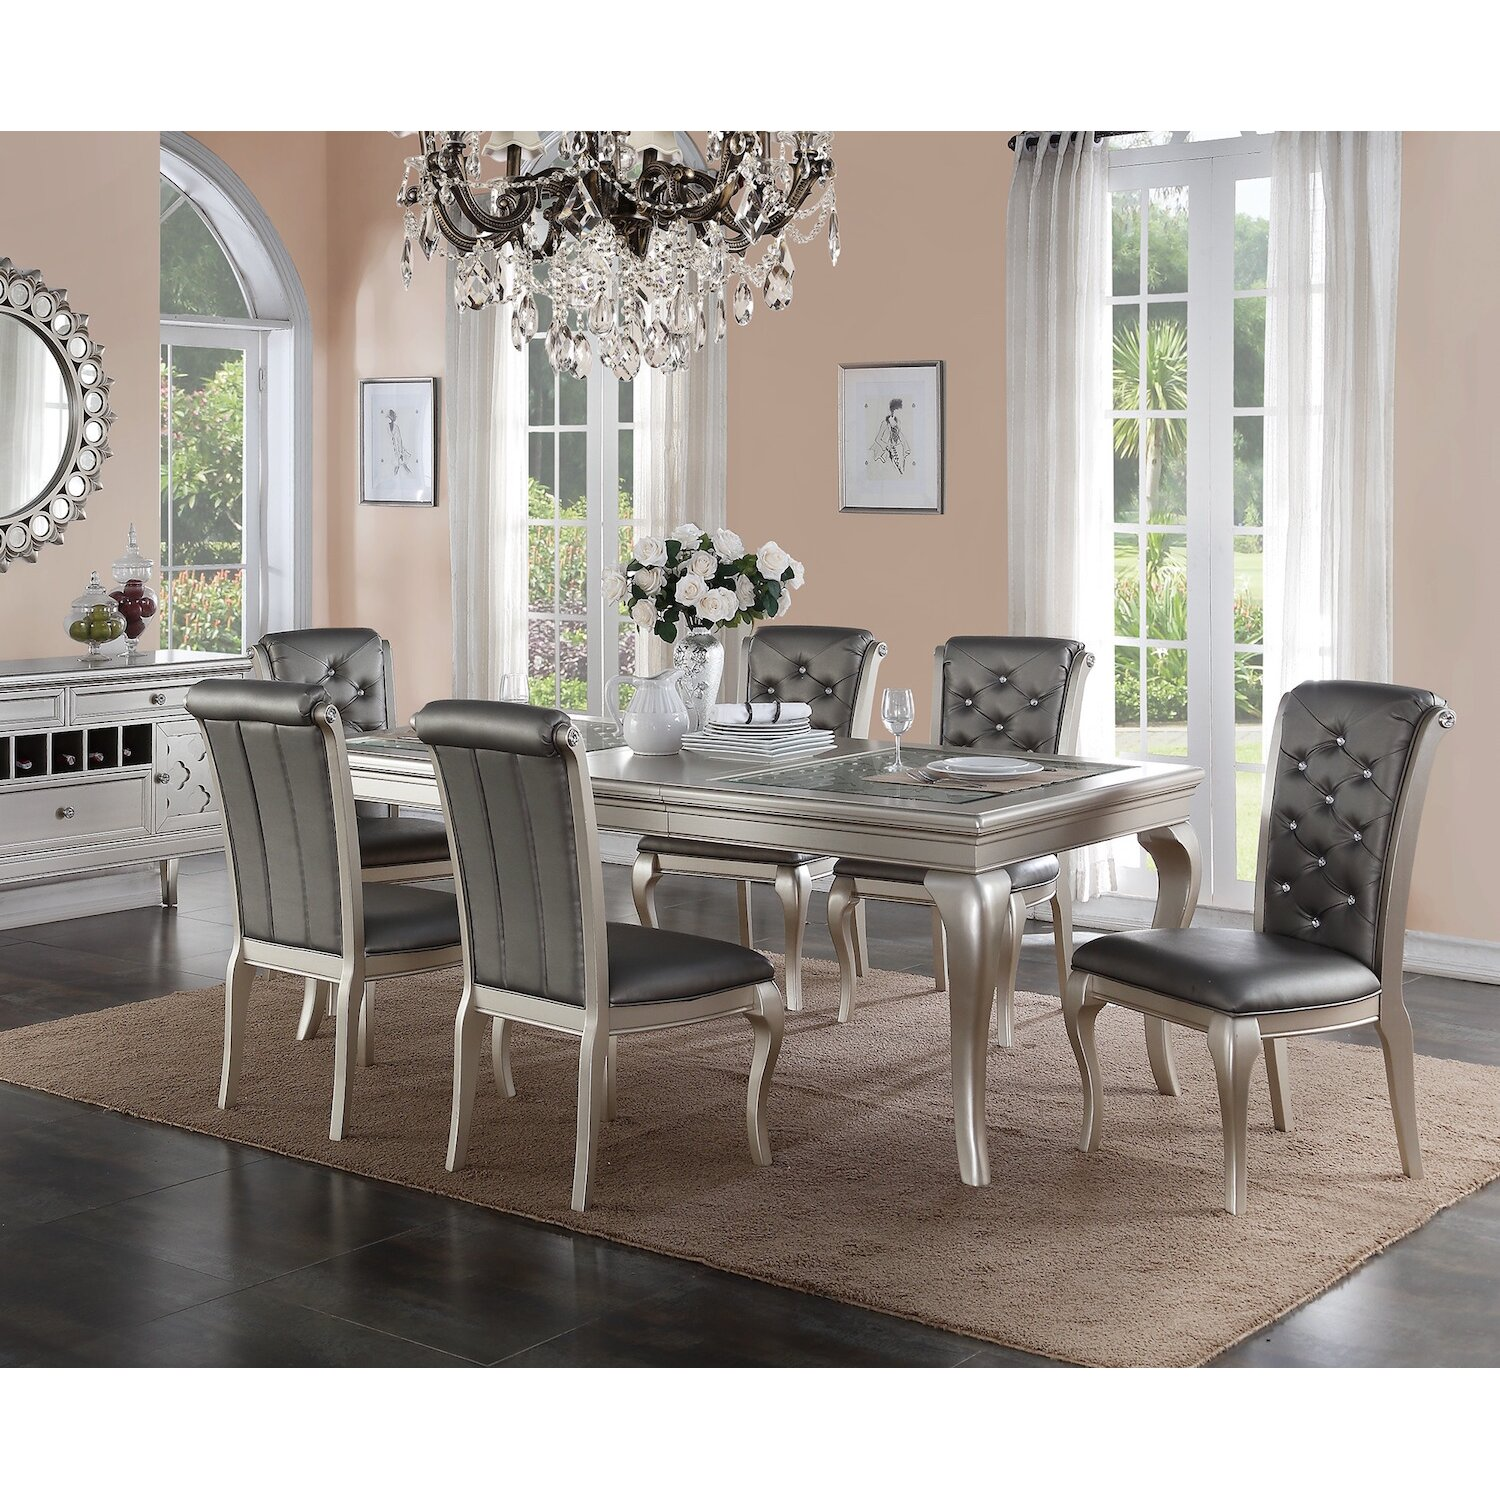 7 Piece Dining Room Set: Infini Furnishings Adele 7 Piece Dining Set & Reviews